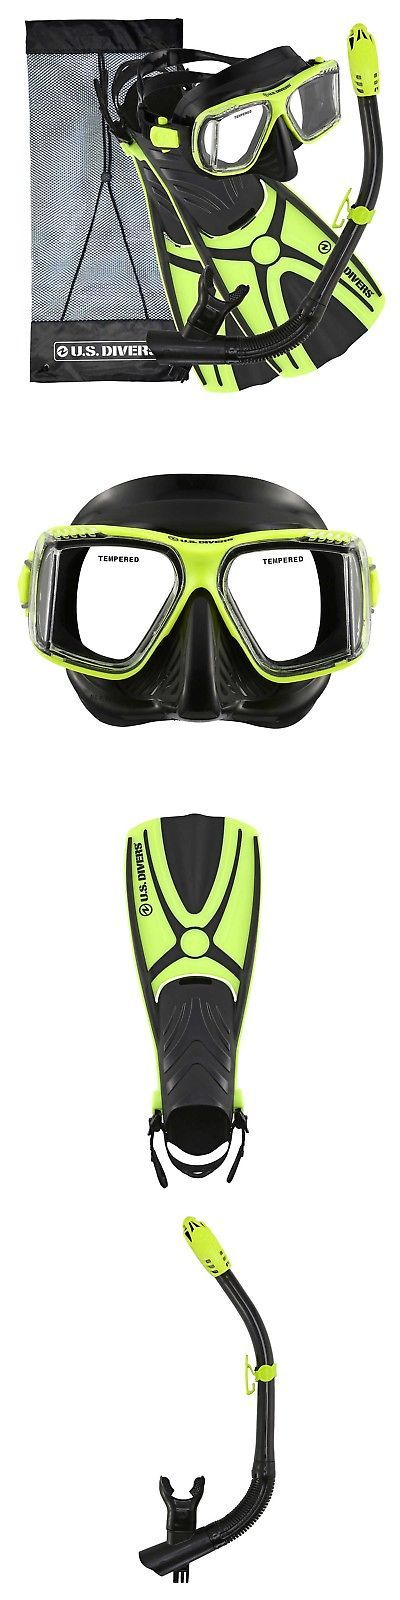 Snorkels and Sets 71162: U.S. Divers Panoramic View Adult Snorkel Set - Neon ... **Sale - Special Price** -> BUY IT NOW ONLY: $51.66 on eBay!